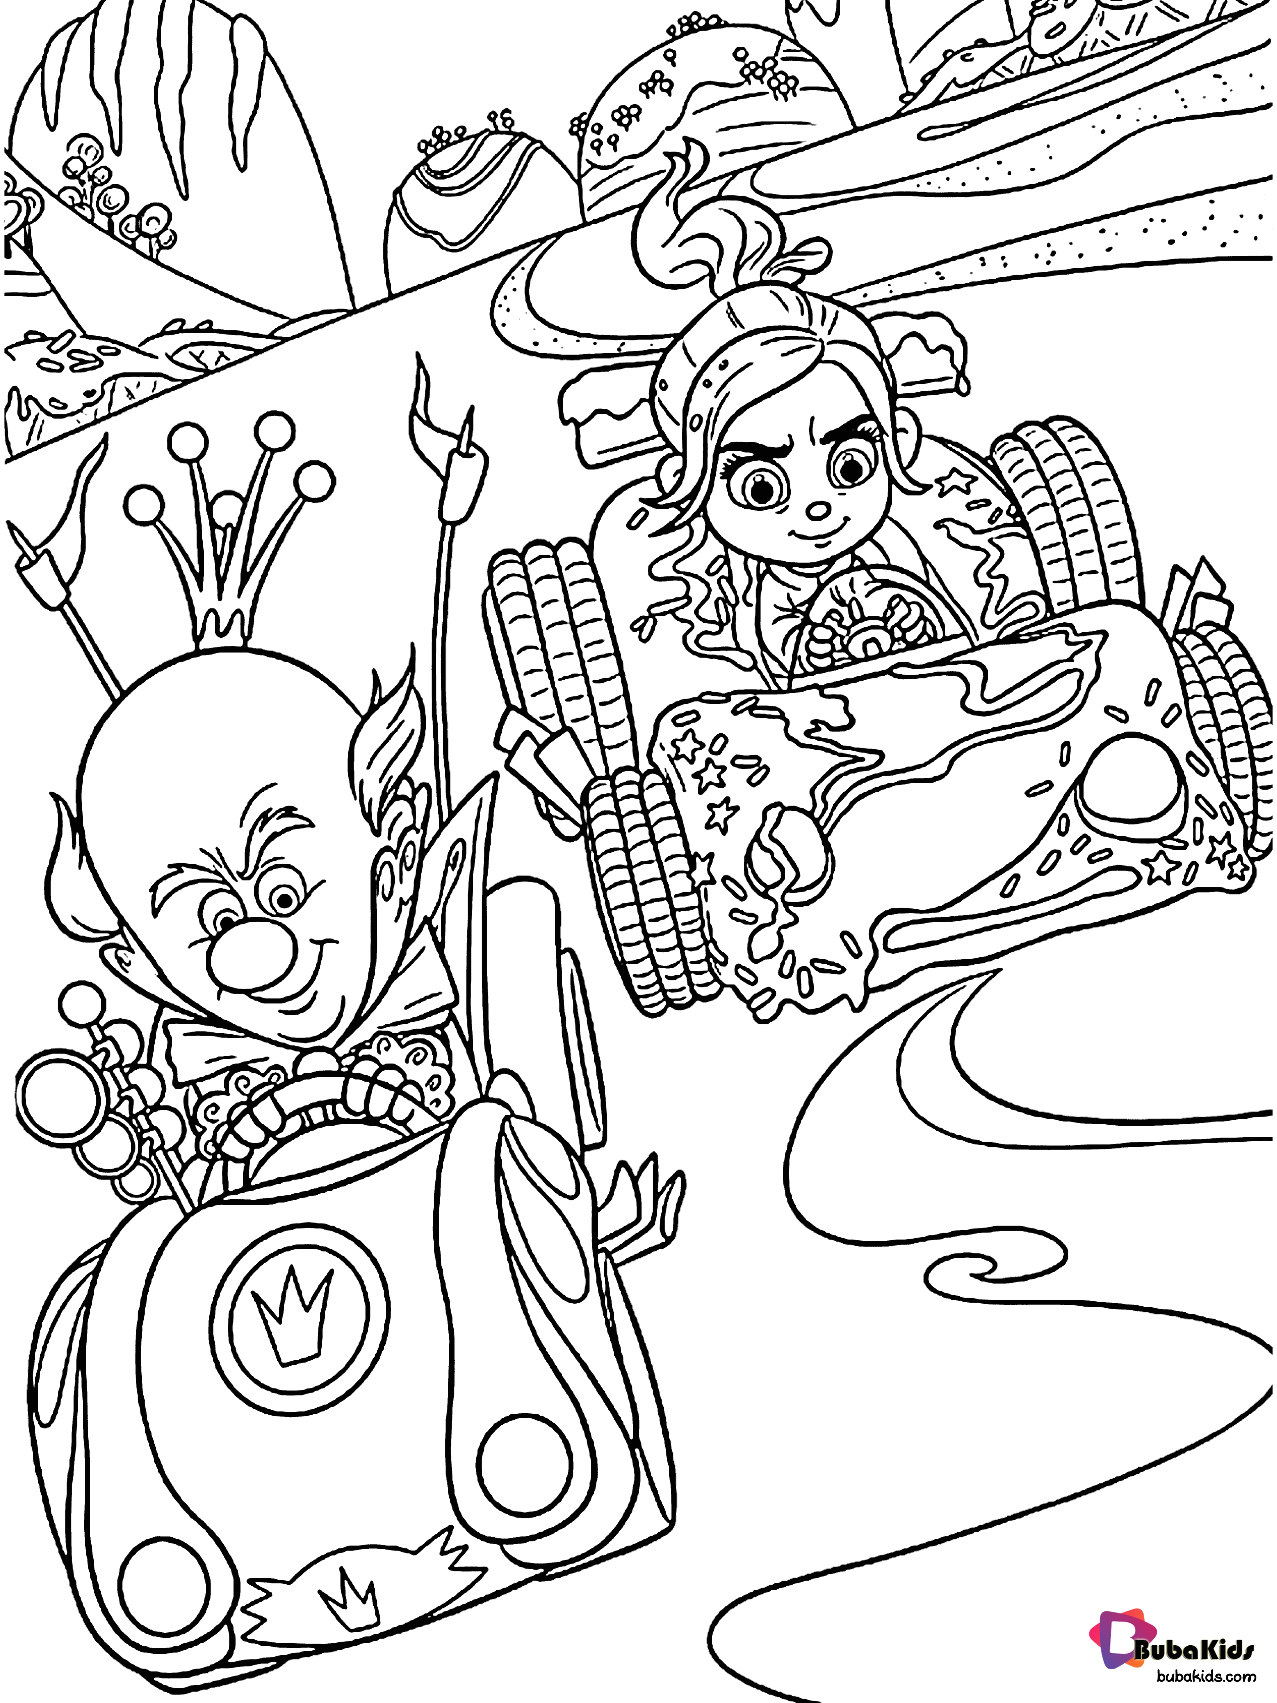 disneys wreck it ralph free and printable coloring page